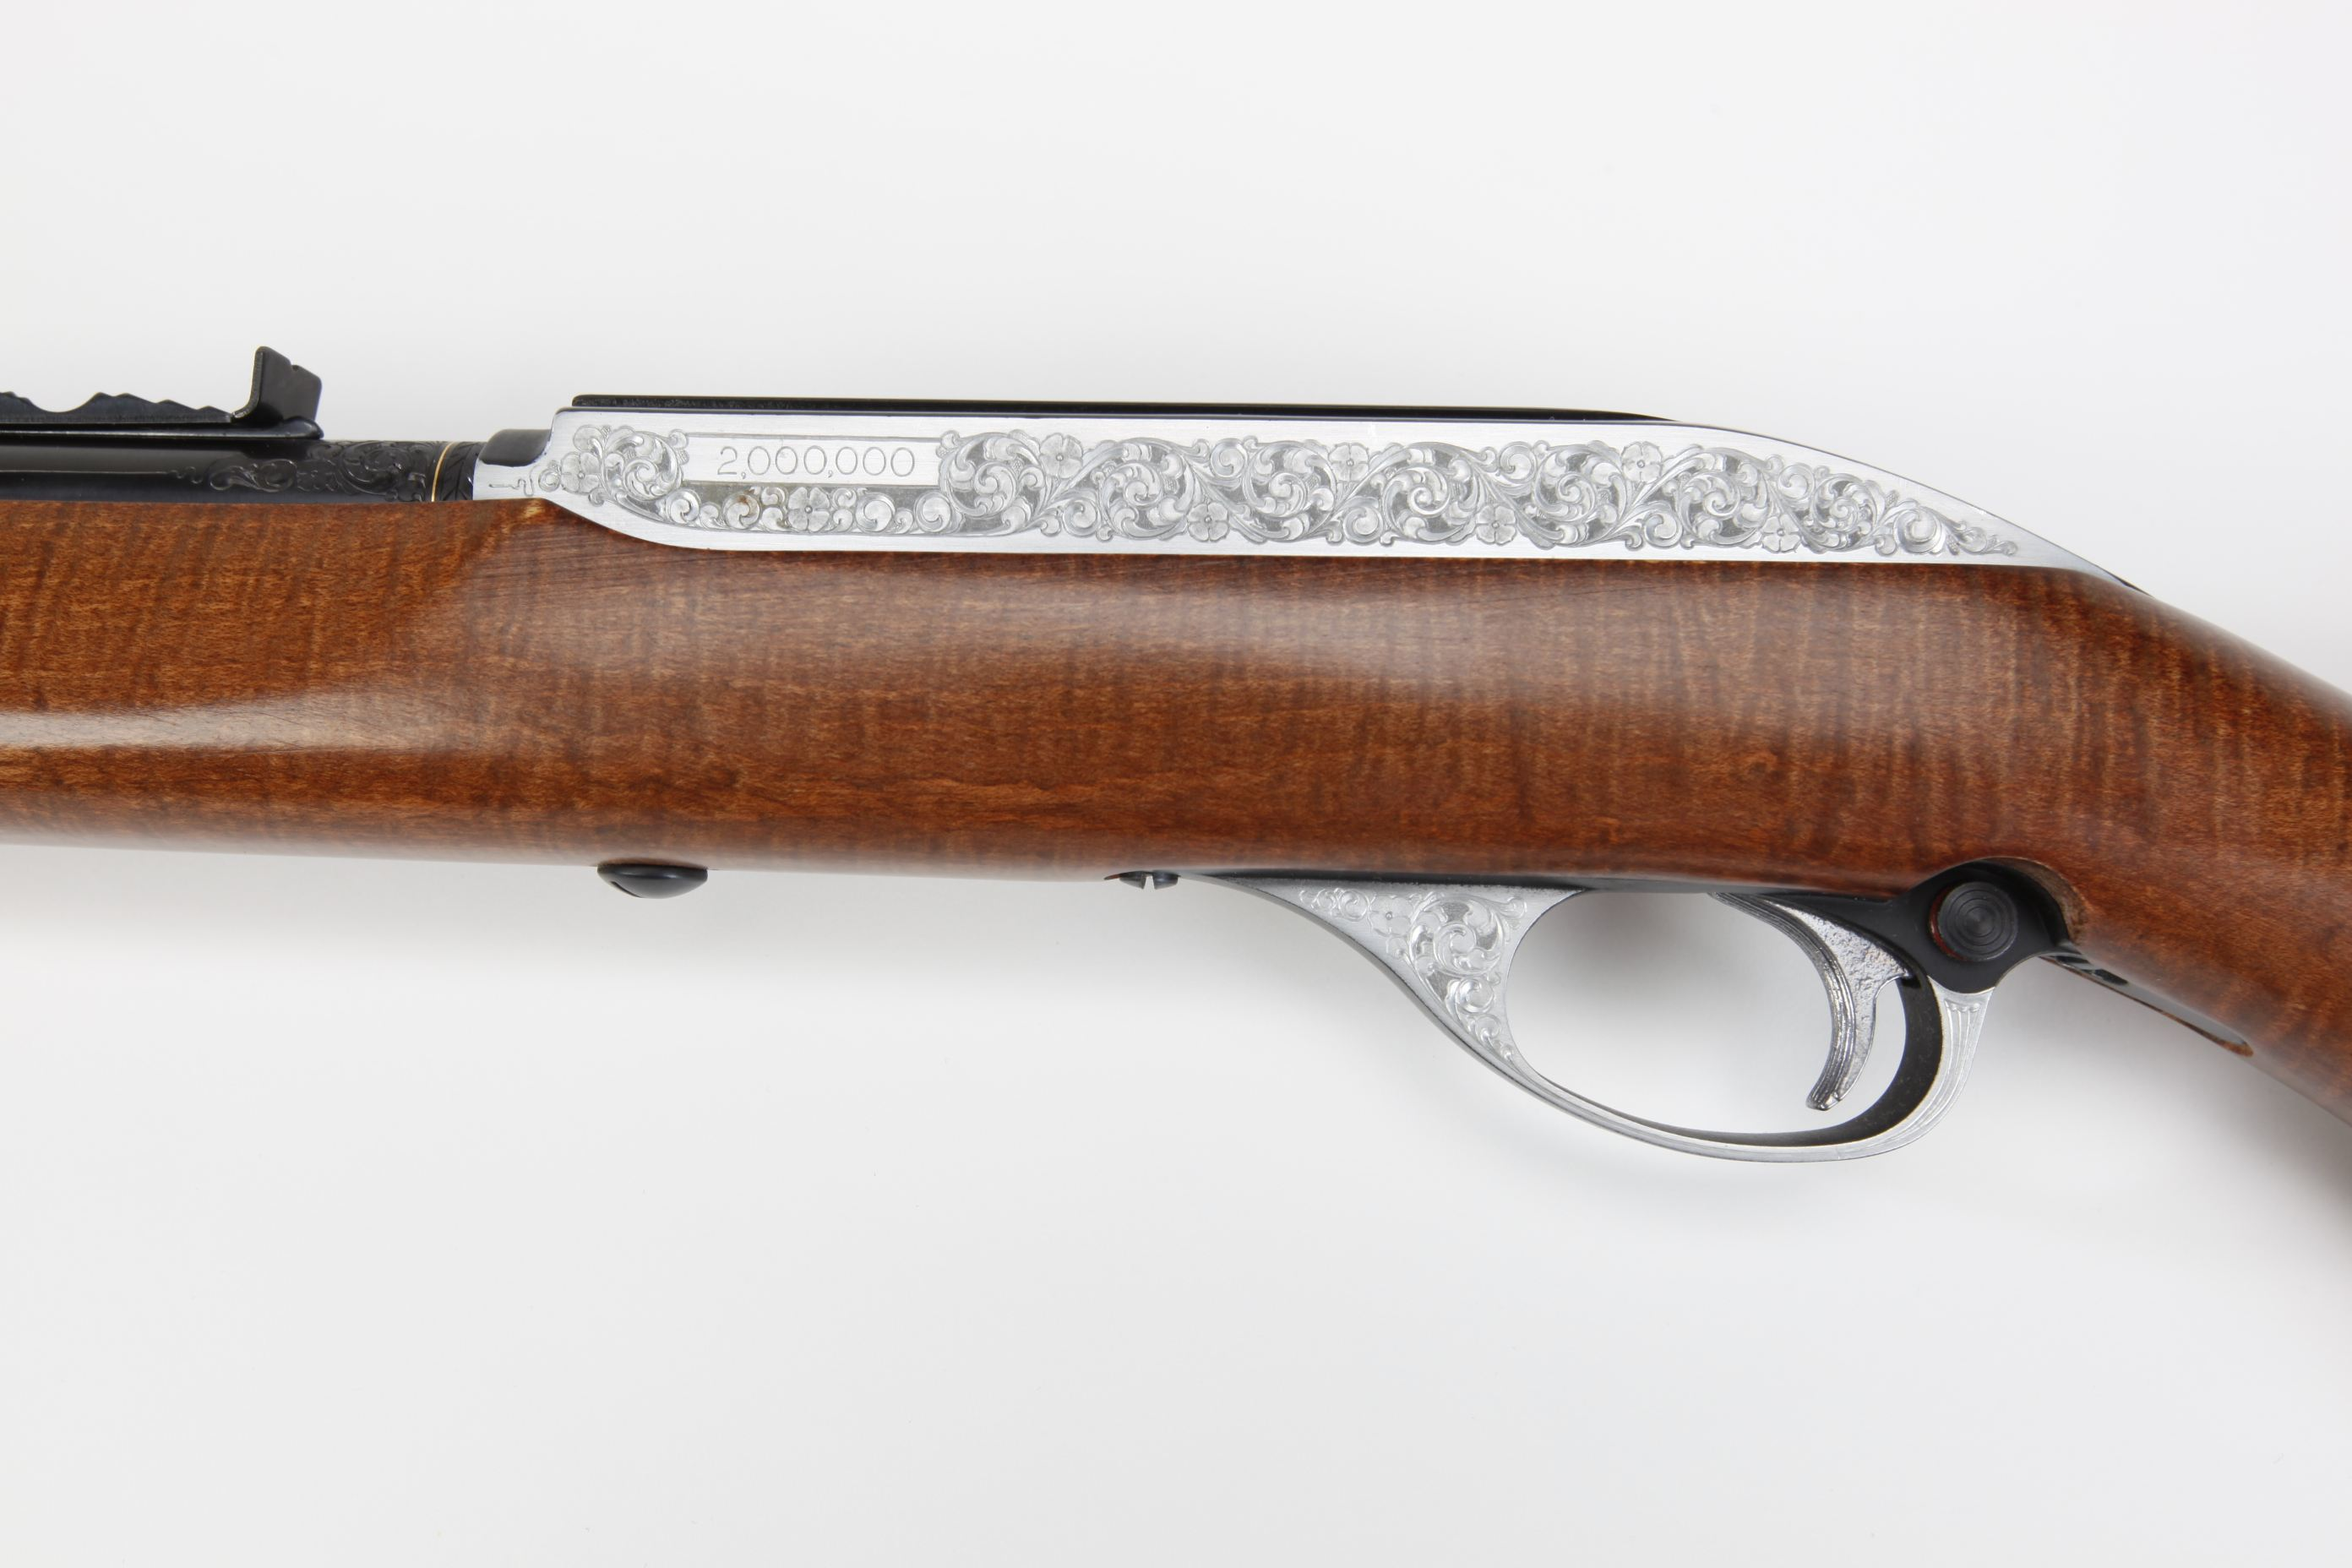 Marlin Model 60 Glenfield Semi Automatic Rifle